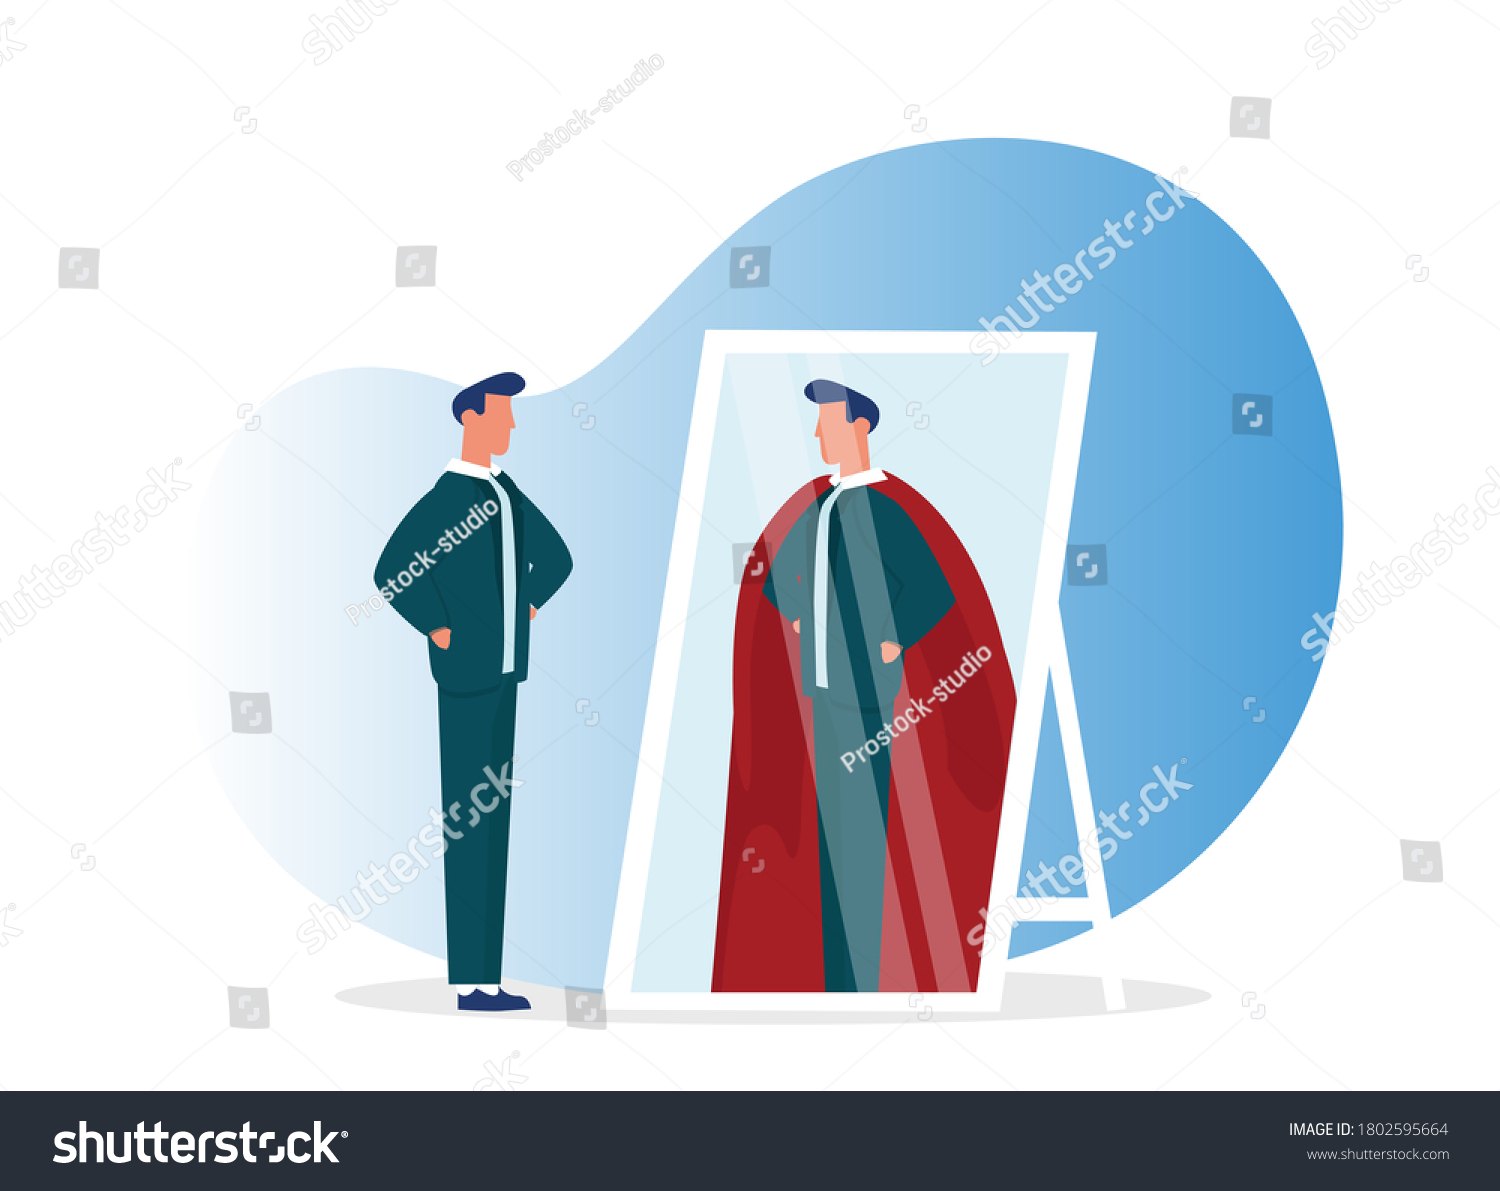 Businessman Looking At Reflection In Mirror And Seeing Super Hero Standing On White Background. Leadership, Ambition And Self-Confidence. Vector Illustration